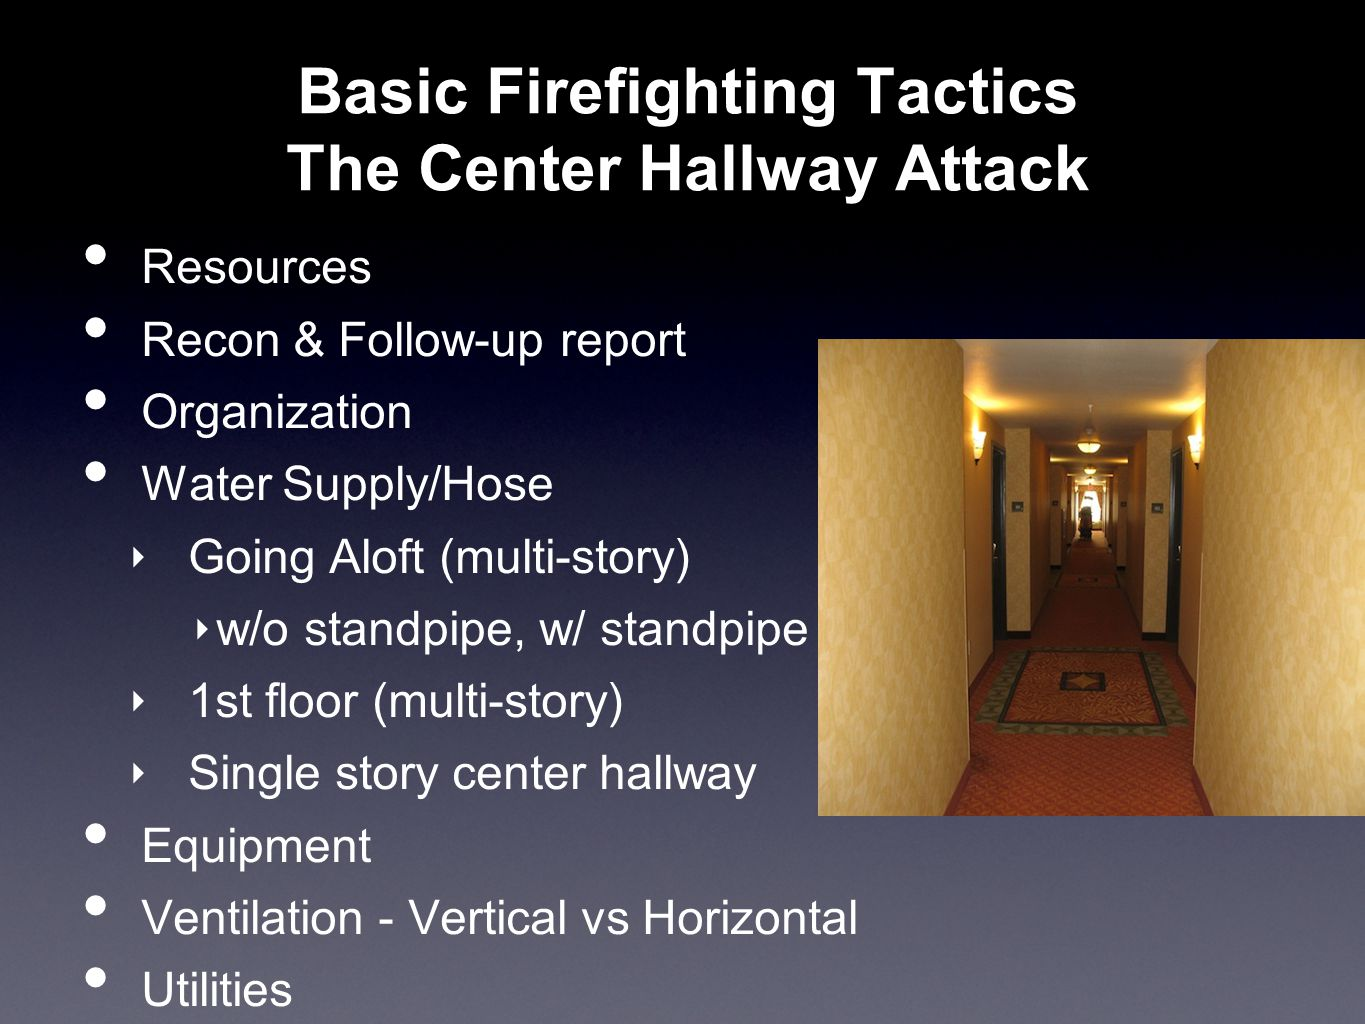 Basic Firefighting Tactics The Center Hallway Attack